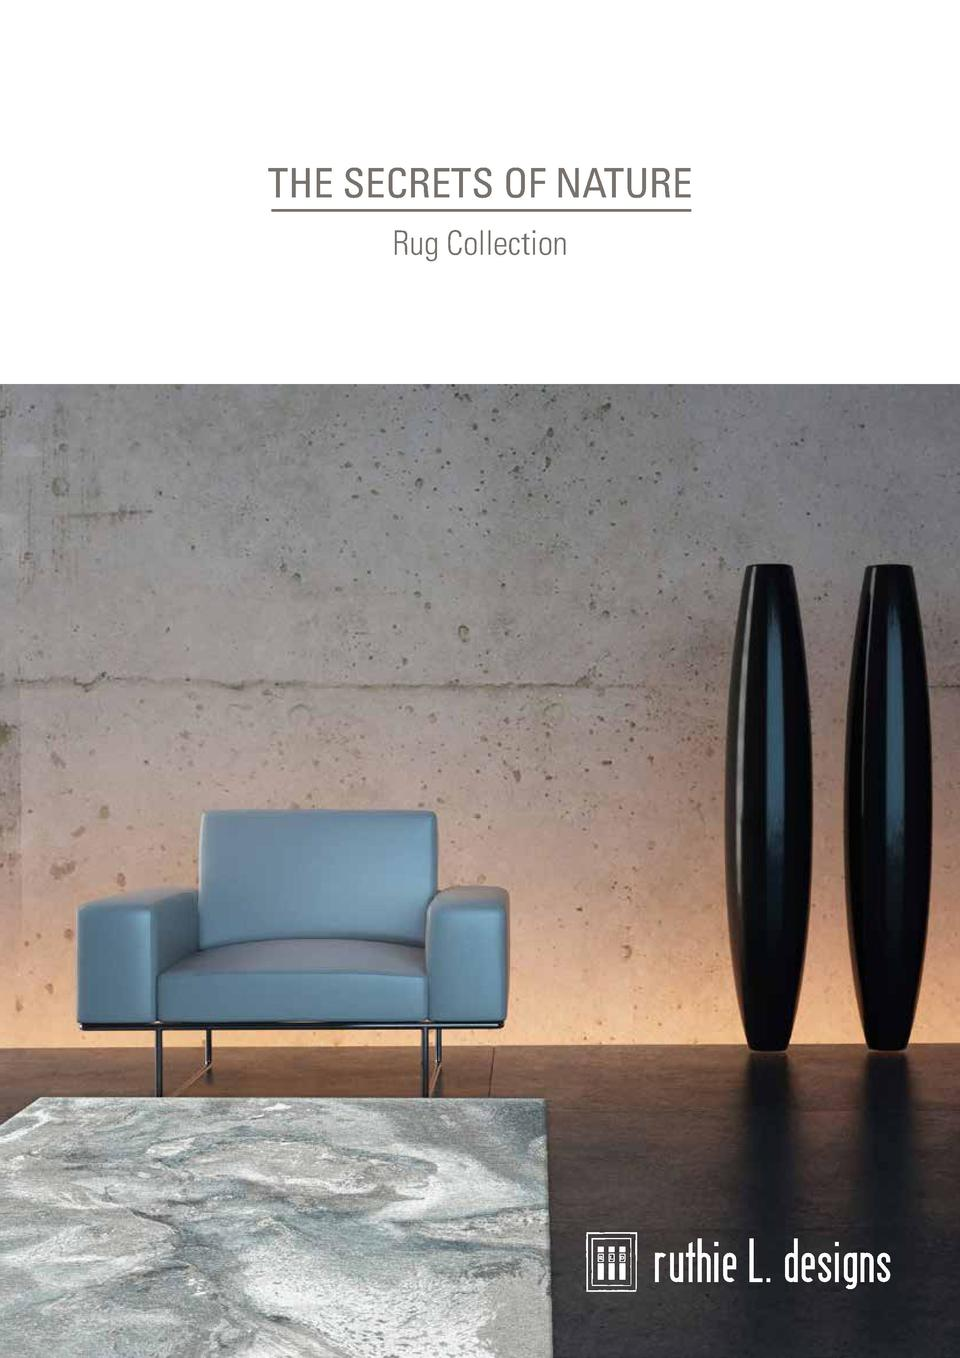 THE SECRETS OF NATURE Rug Collection